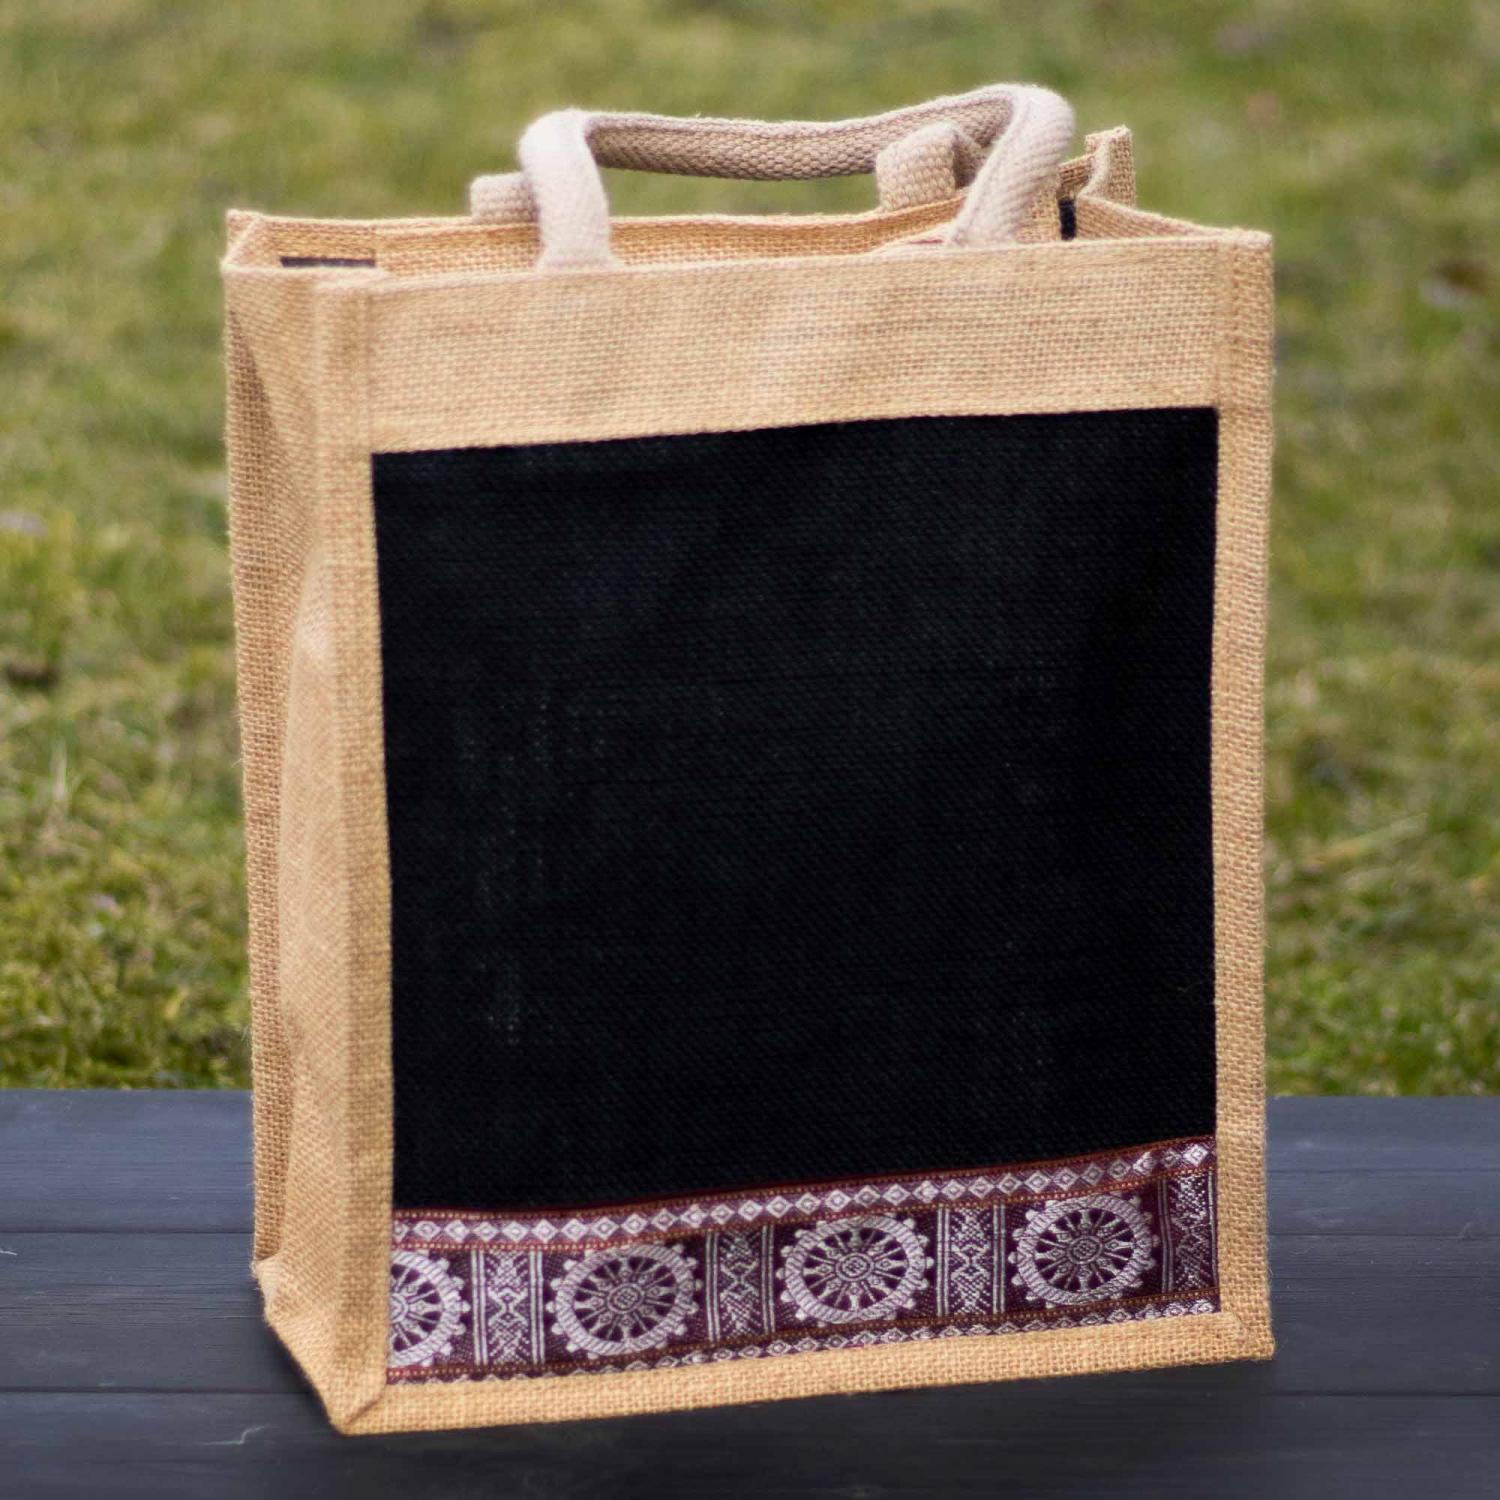 Jute bag in black and cream color with decorative patterns standing on black wood with green grass in the background